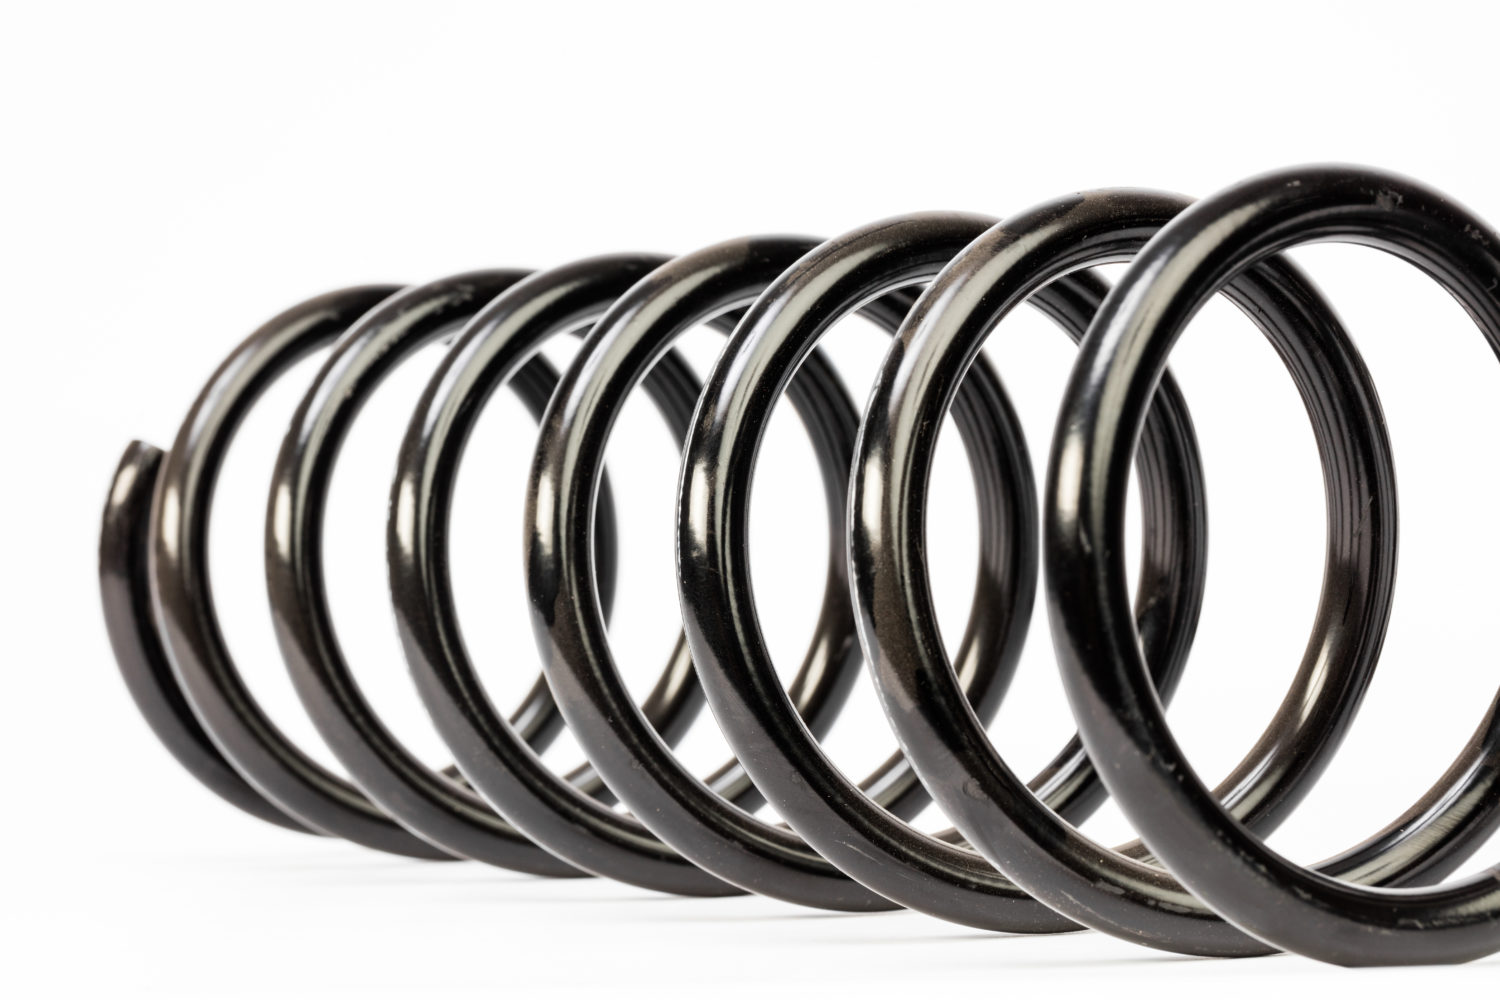 patentierter Kohlenstoffdraht Federstahldraht patented high carbon spring wire EN 10270-1